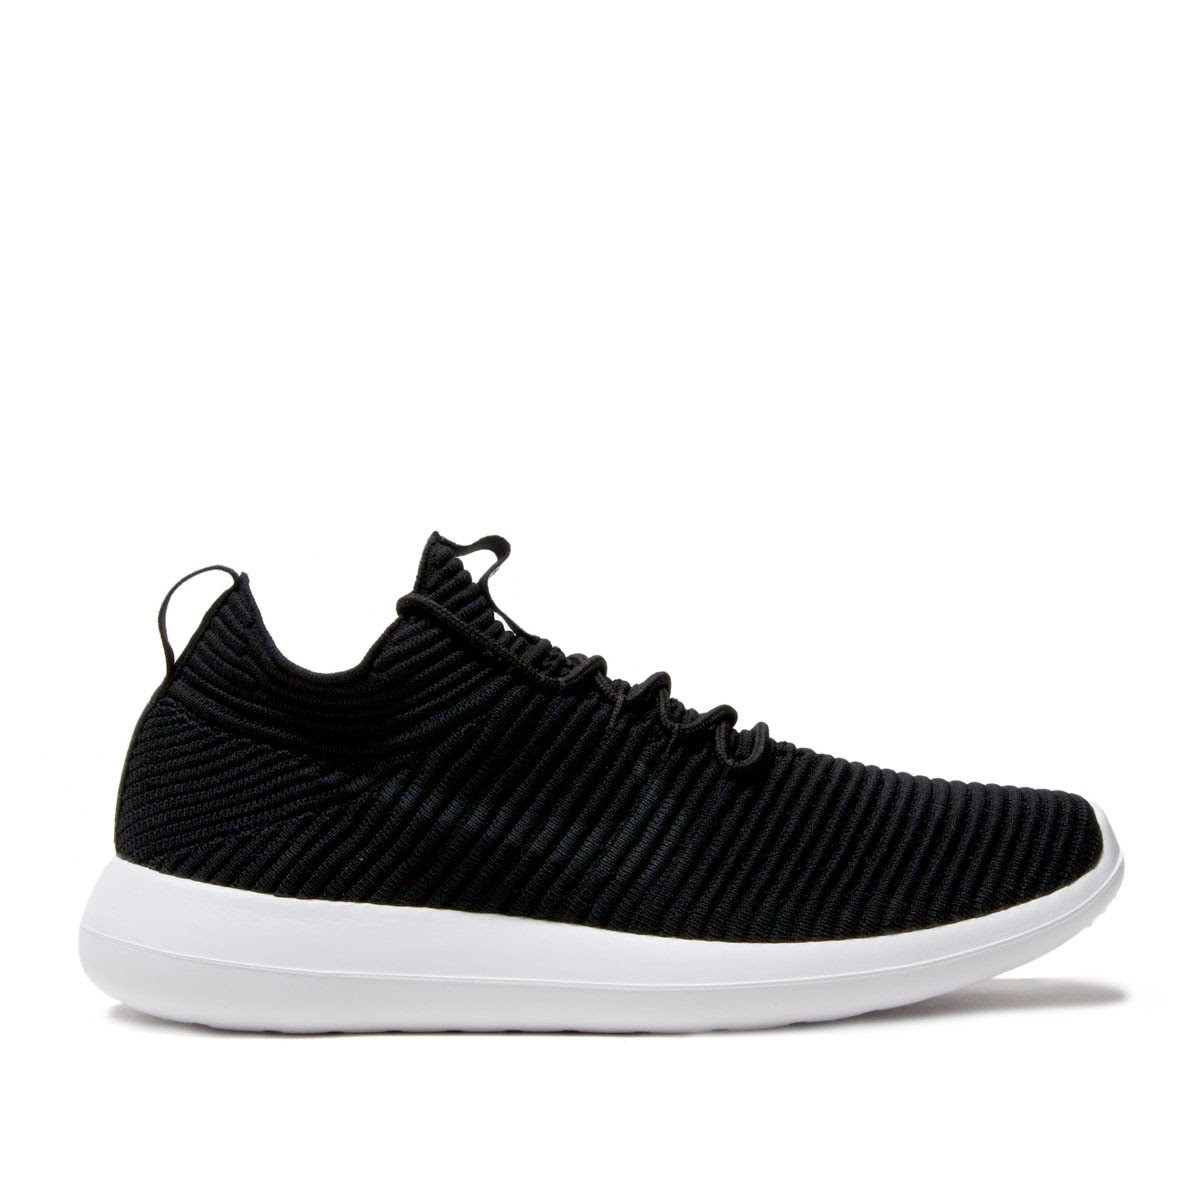 detailed look bfa9e 972f2 Nike Women's Roshe Two Flyknit V2 917688-001 Black ,White